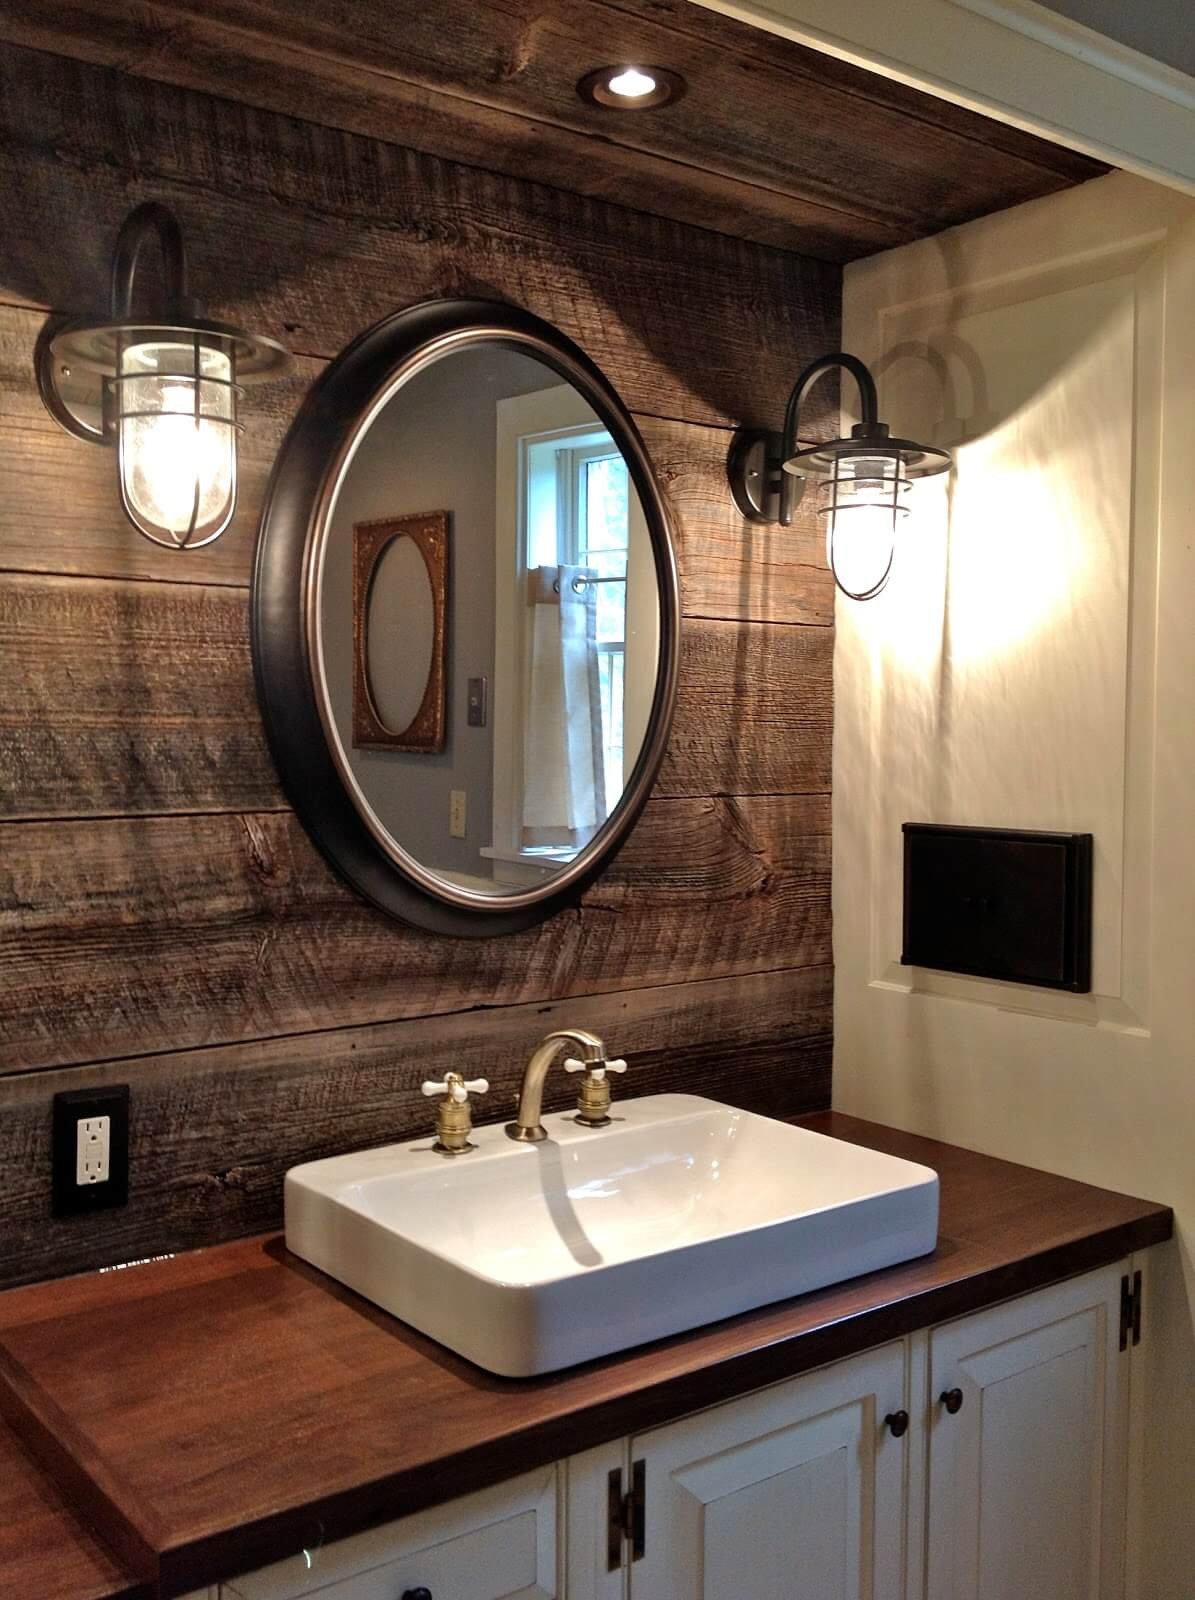 Decorative Bathroom Sinks Awesome 25 Best Bathroom Sink Ideas and Designs for 2020